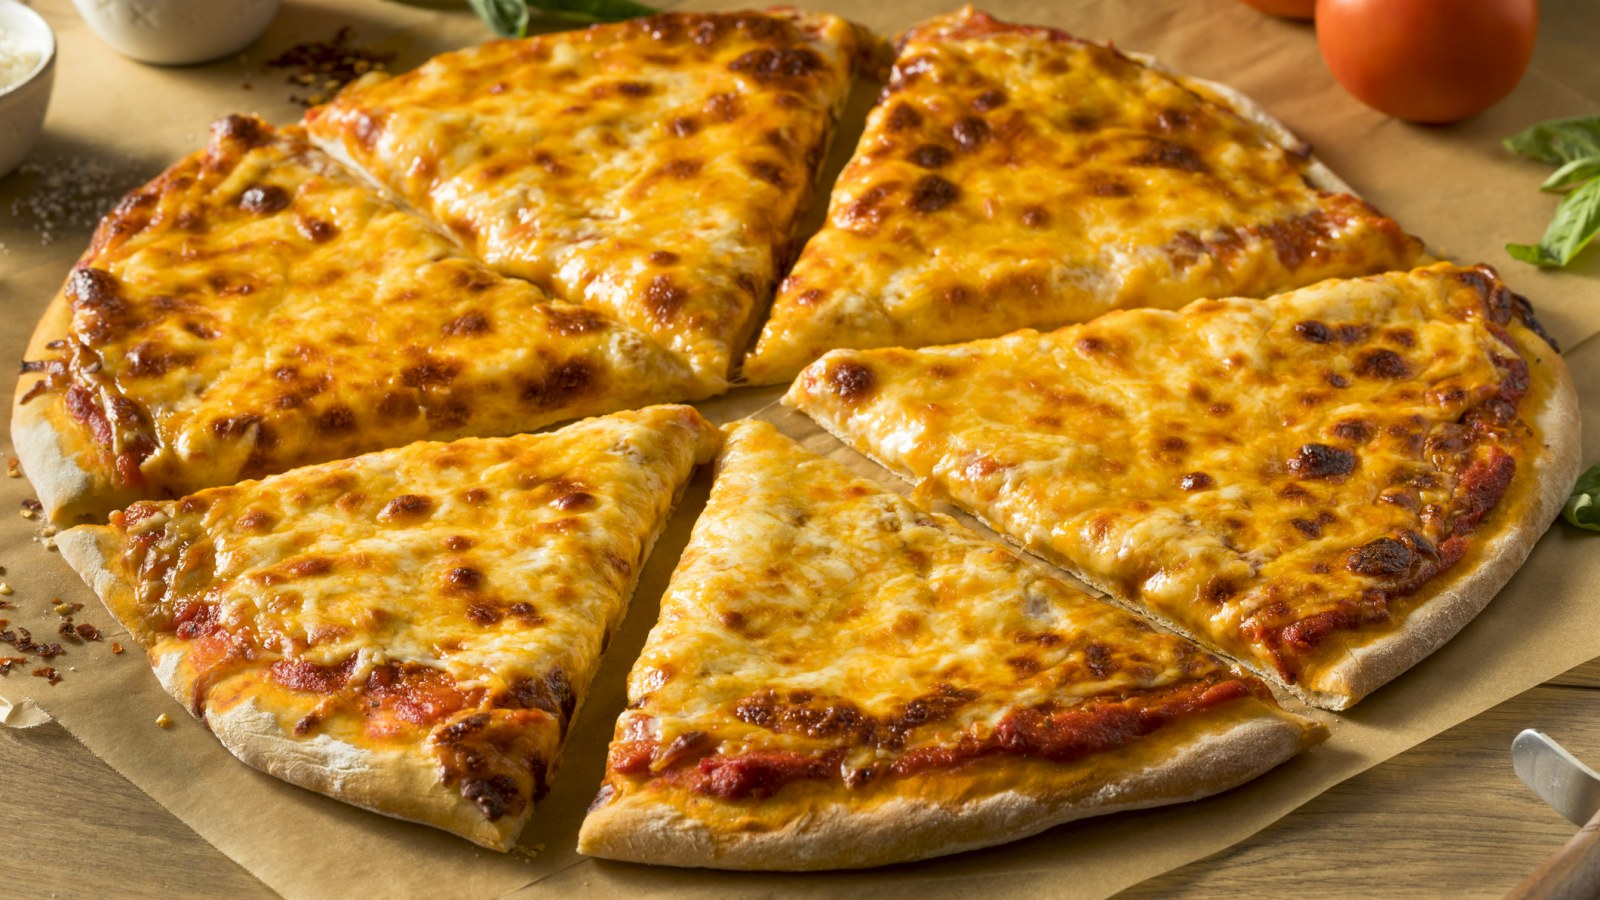 National Cheese Pizza Day Deals From Pizza Hut Cici S Pizza Blackjack Pizza And More